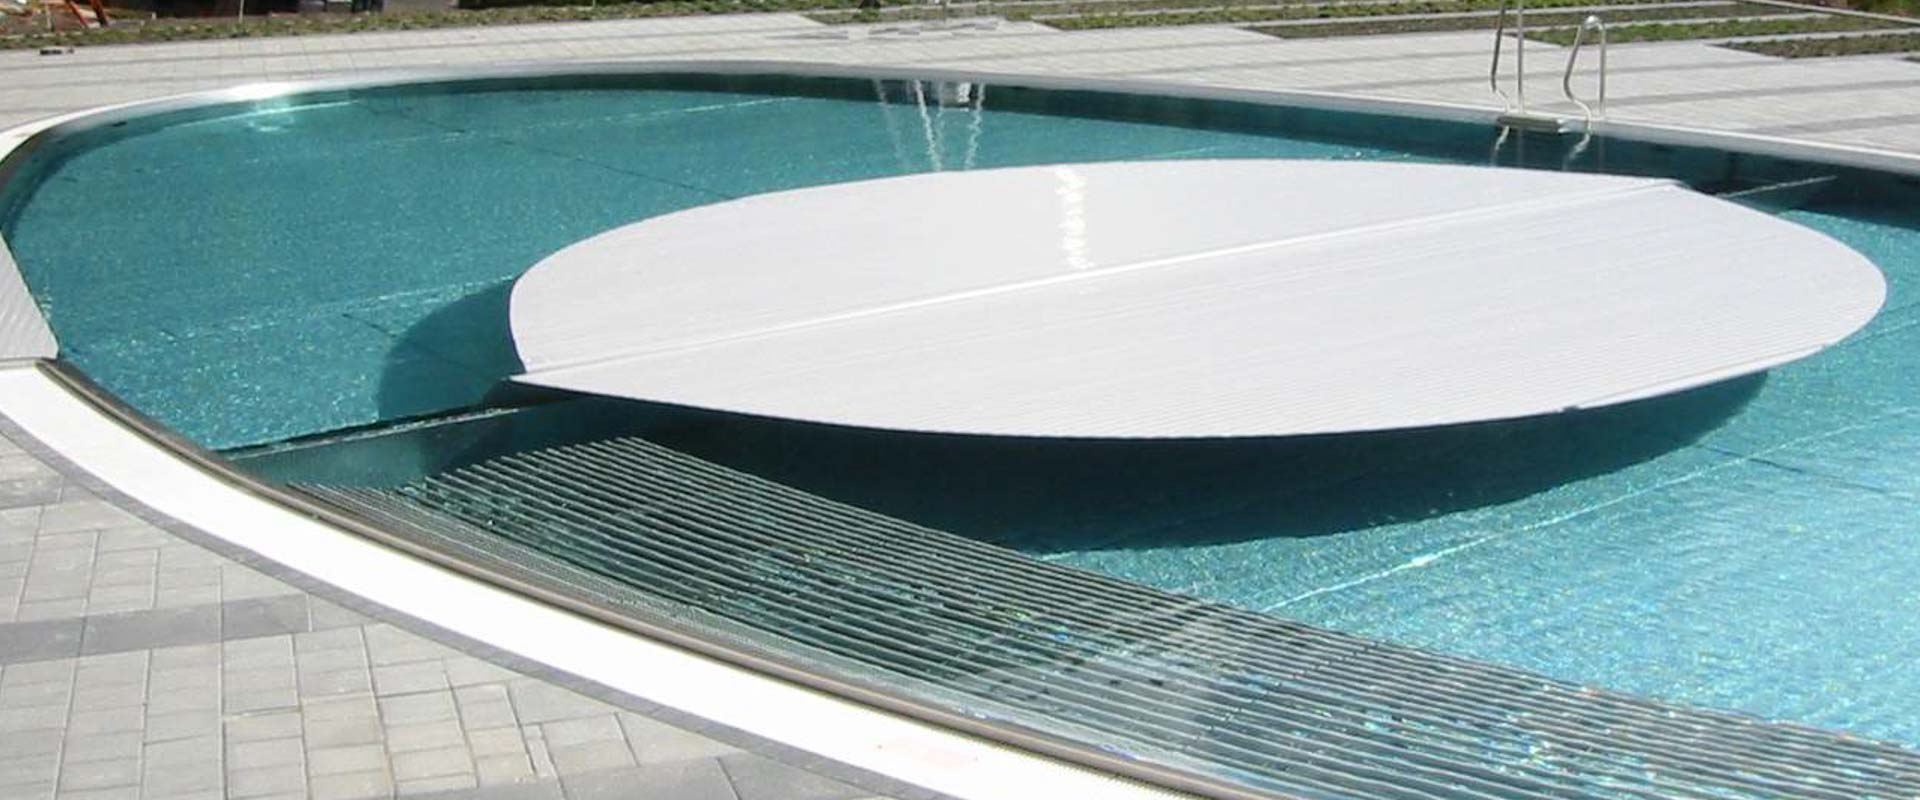 Automatic rigid pool cover system type ibs 8 grando for Automatic pool cover motor